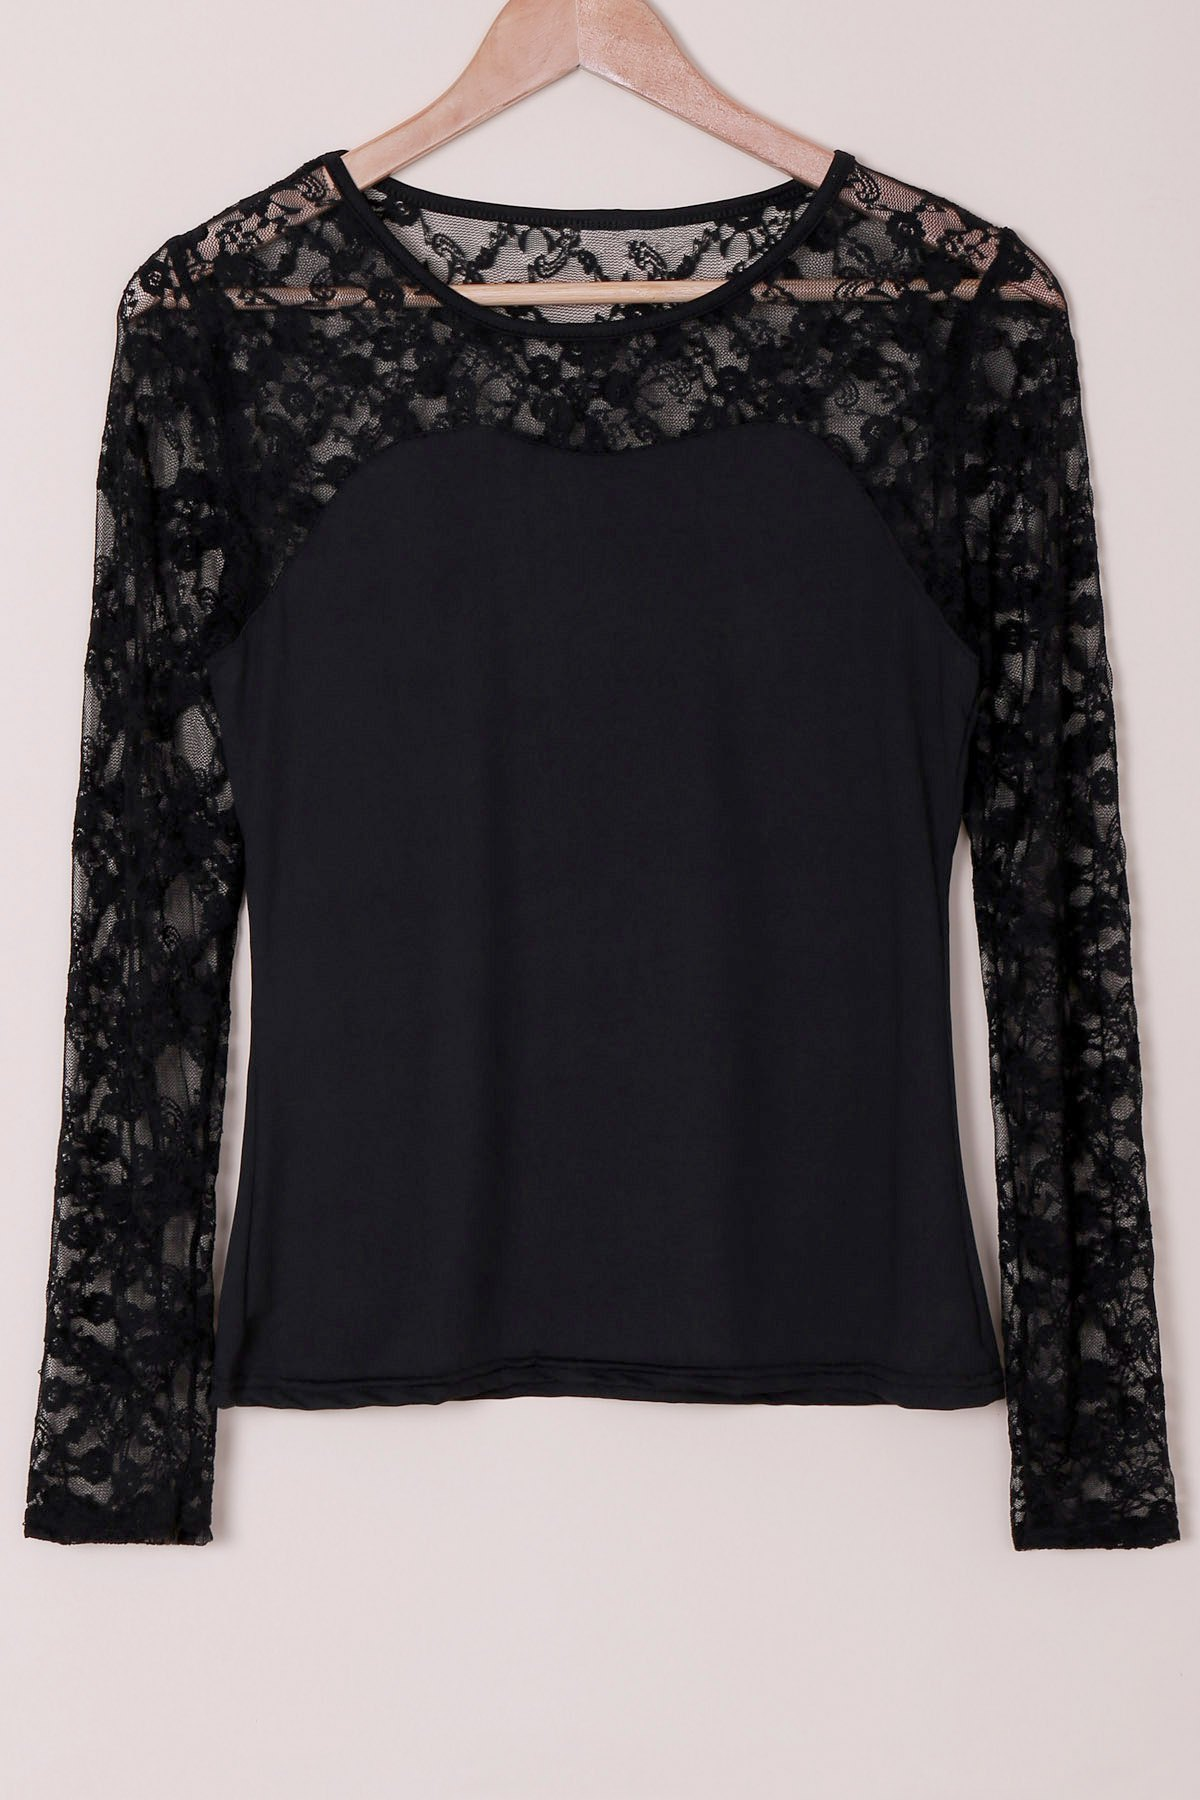 Casual Women's Scoop Neck Long Sleeves Lace Splicing T-Shirt